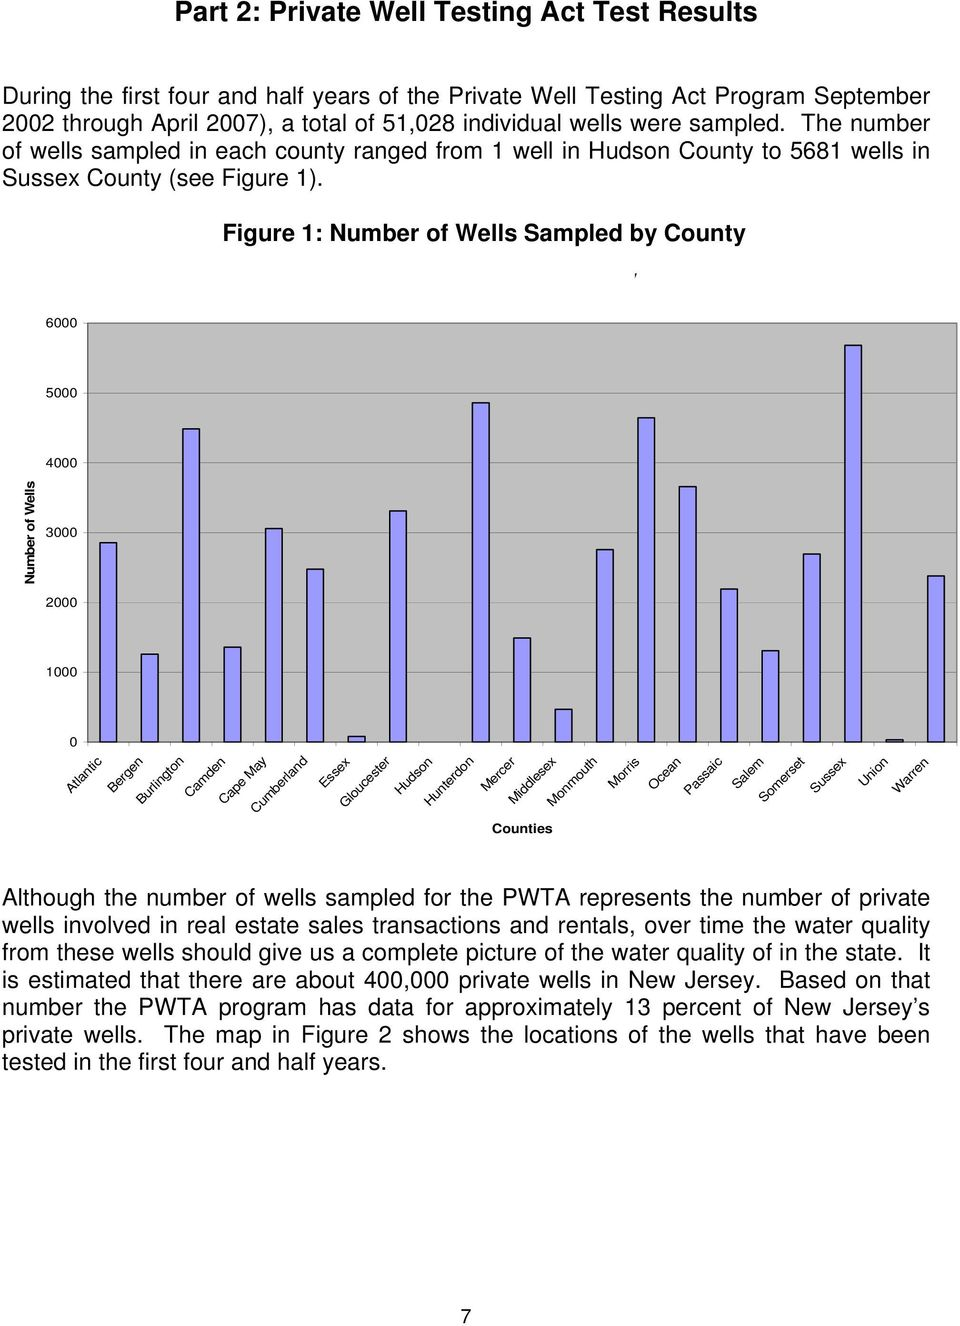 Figure 1: Number of Wells Sampled by County No of Wells Sampled in Each County 6000 5000 4000 Number of Wells 3000 2000 1000 0 Atlantic Bergen Burlington Camden Cape May Cumberland Essex Gloucester